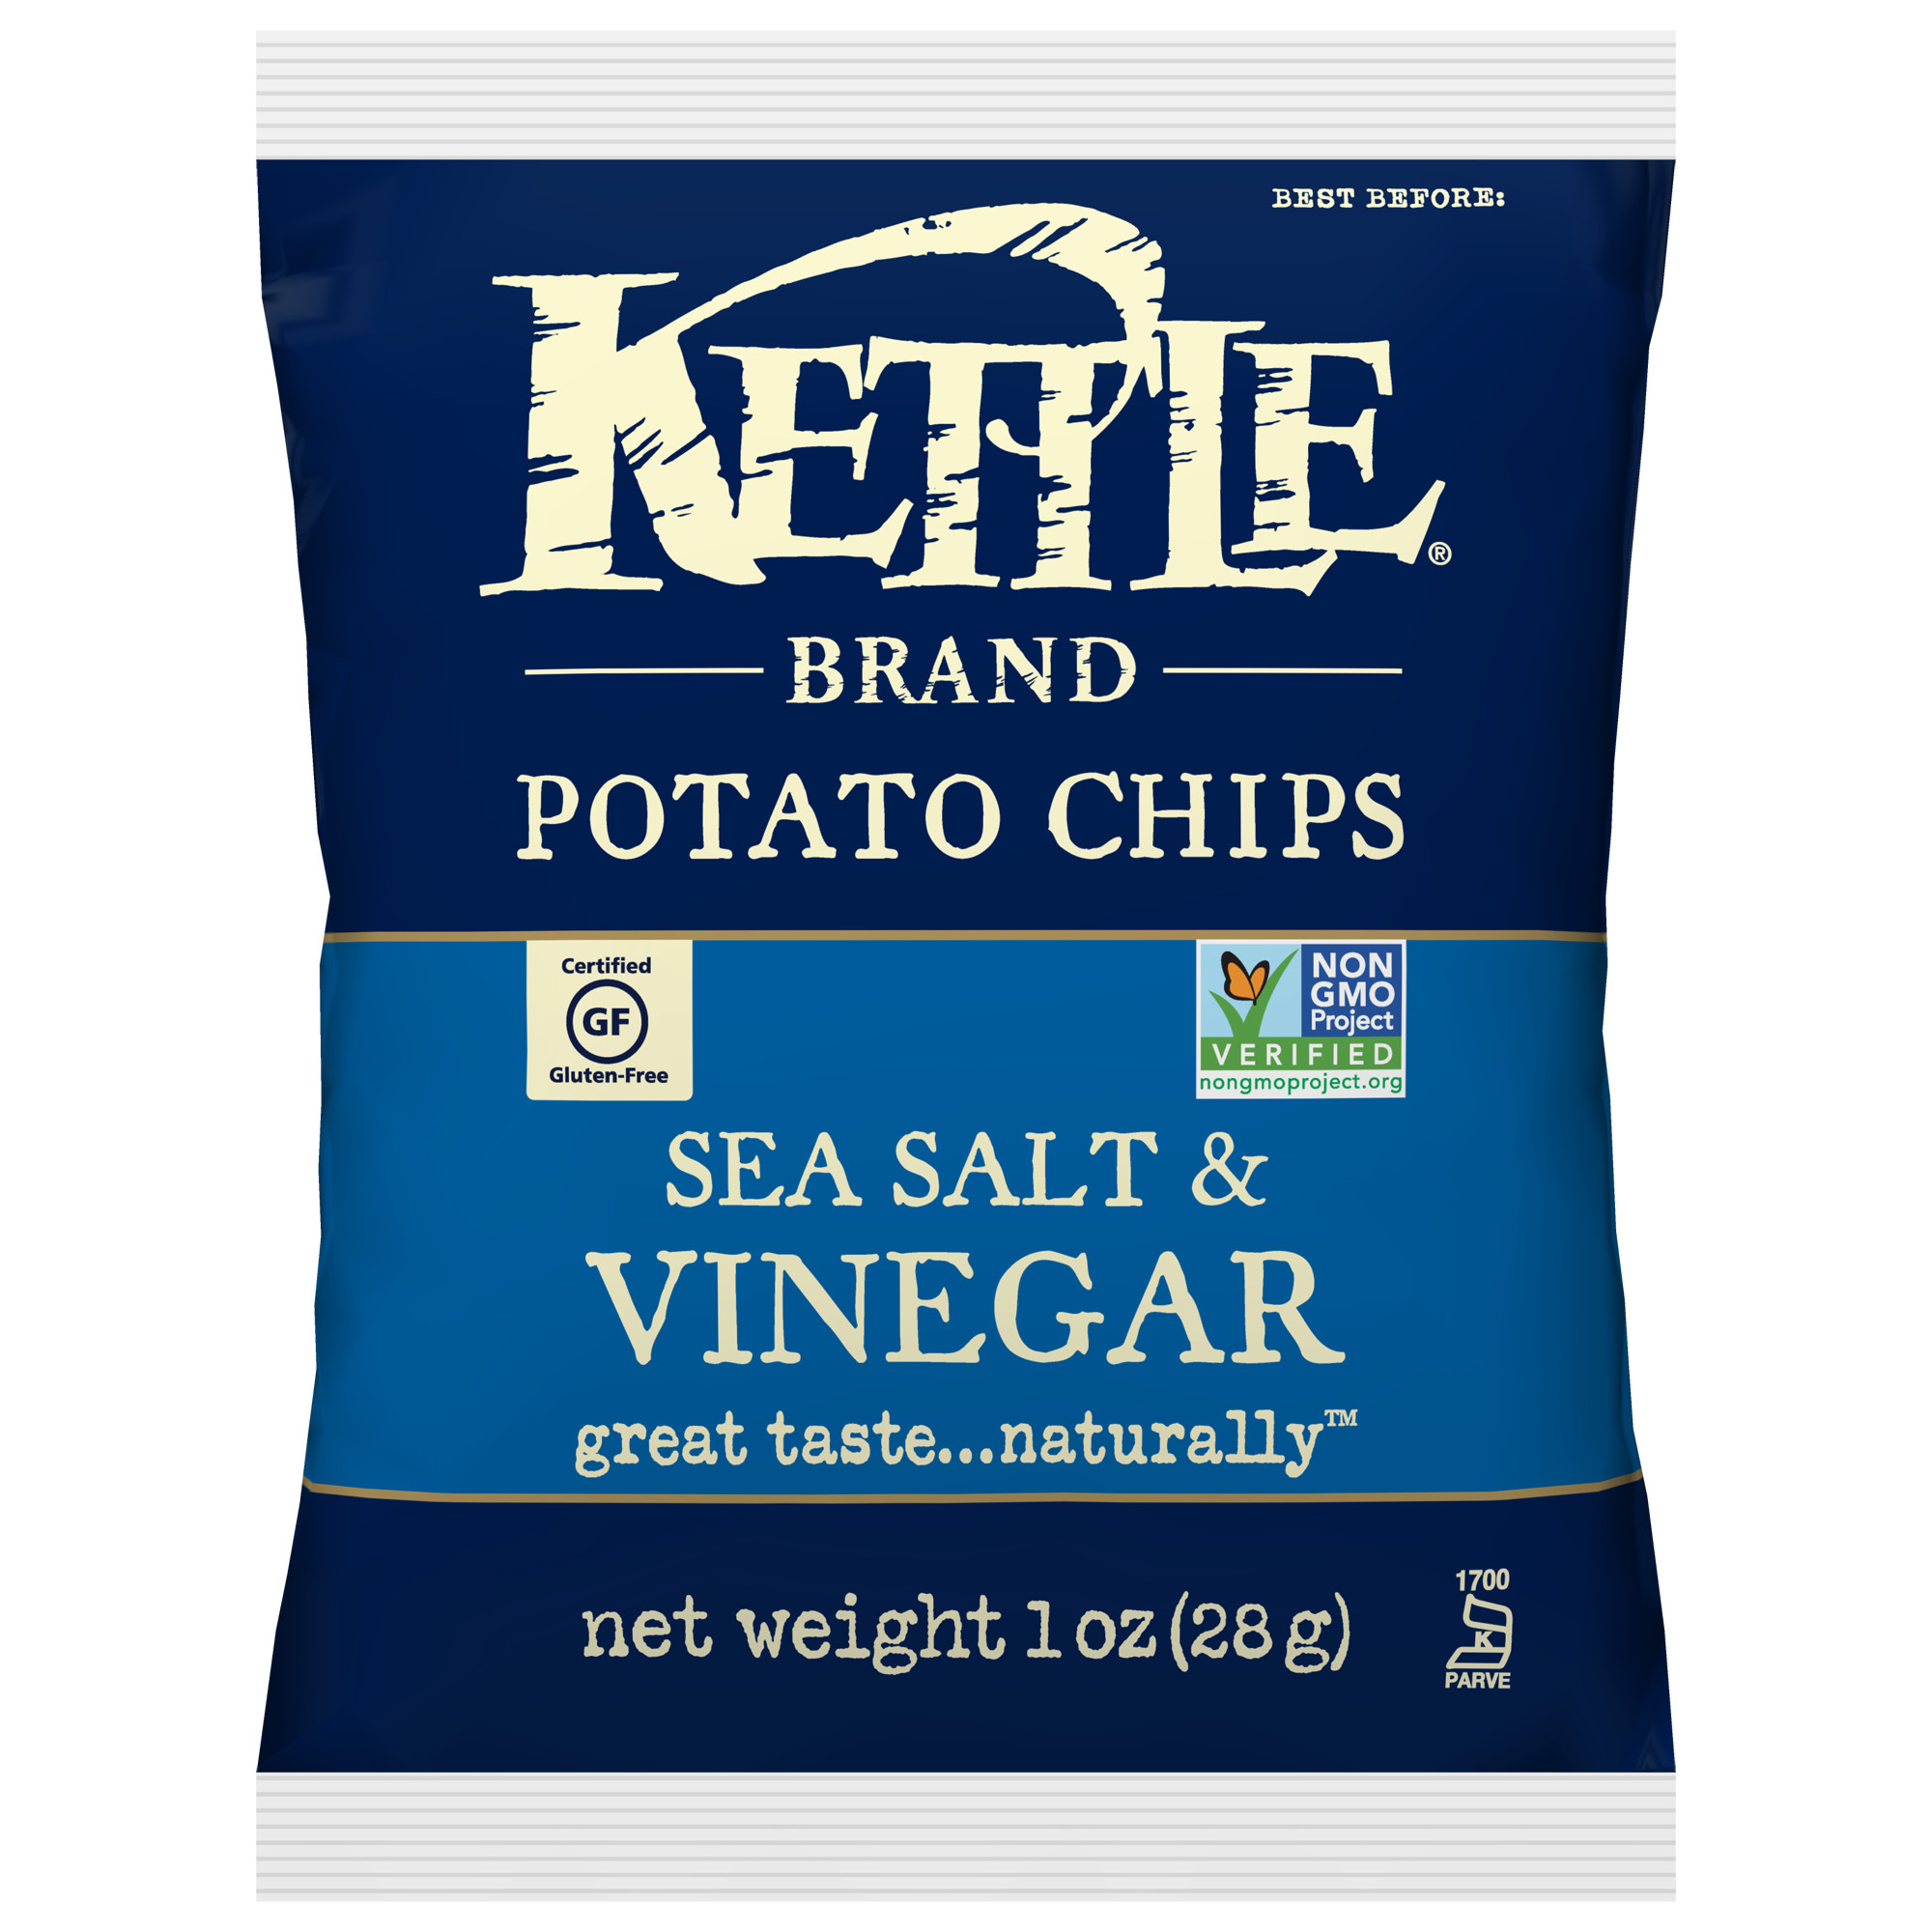 Kettle Brand, Sea Salt and Vinegar Potato Chips, Single-Serve 1 Oz, 72 Ct